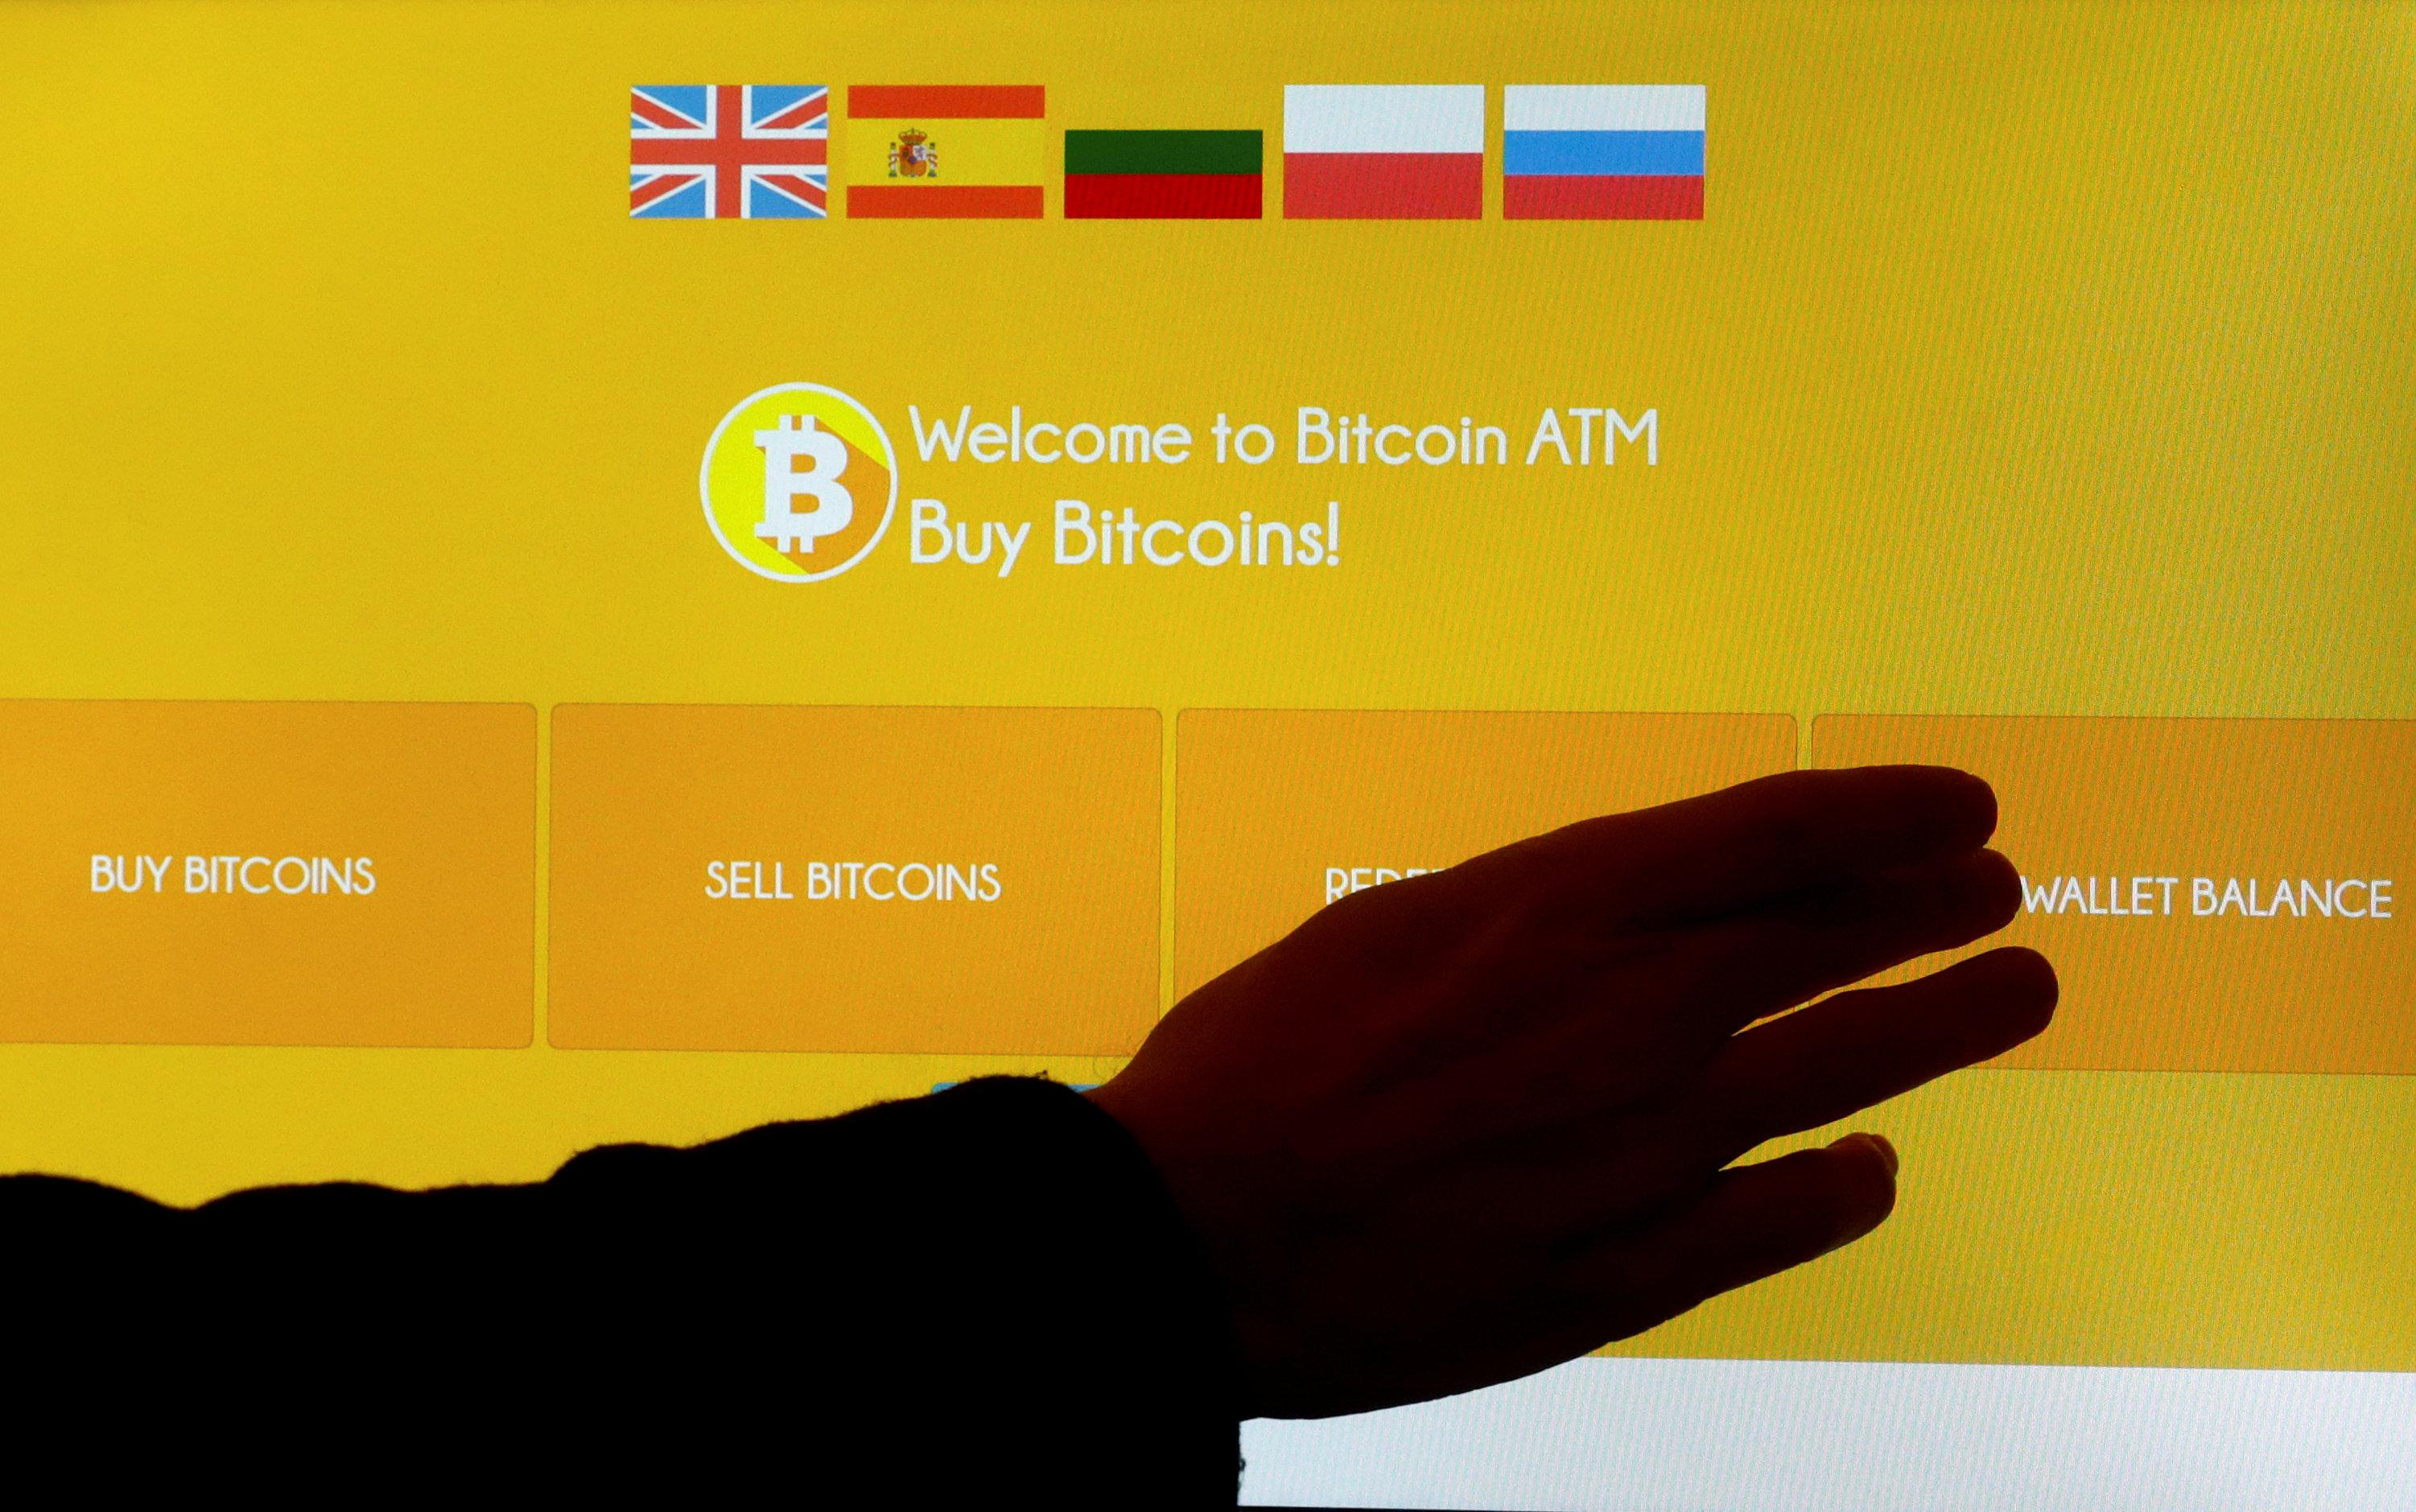 Bitcoin requires you to have A+ digital security habits